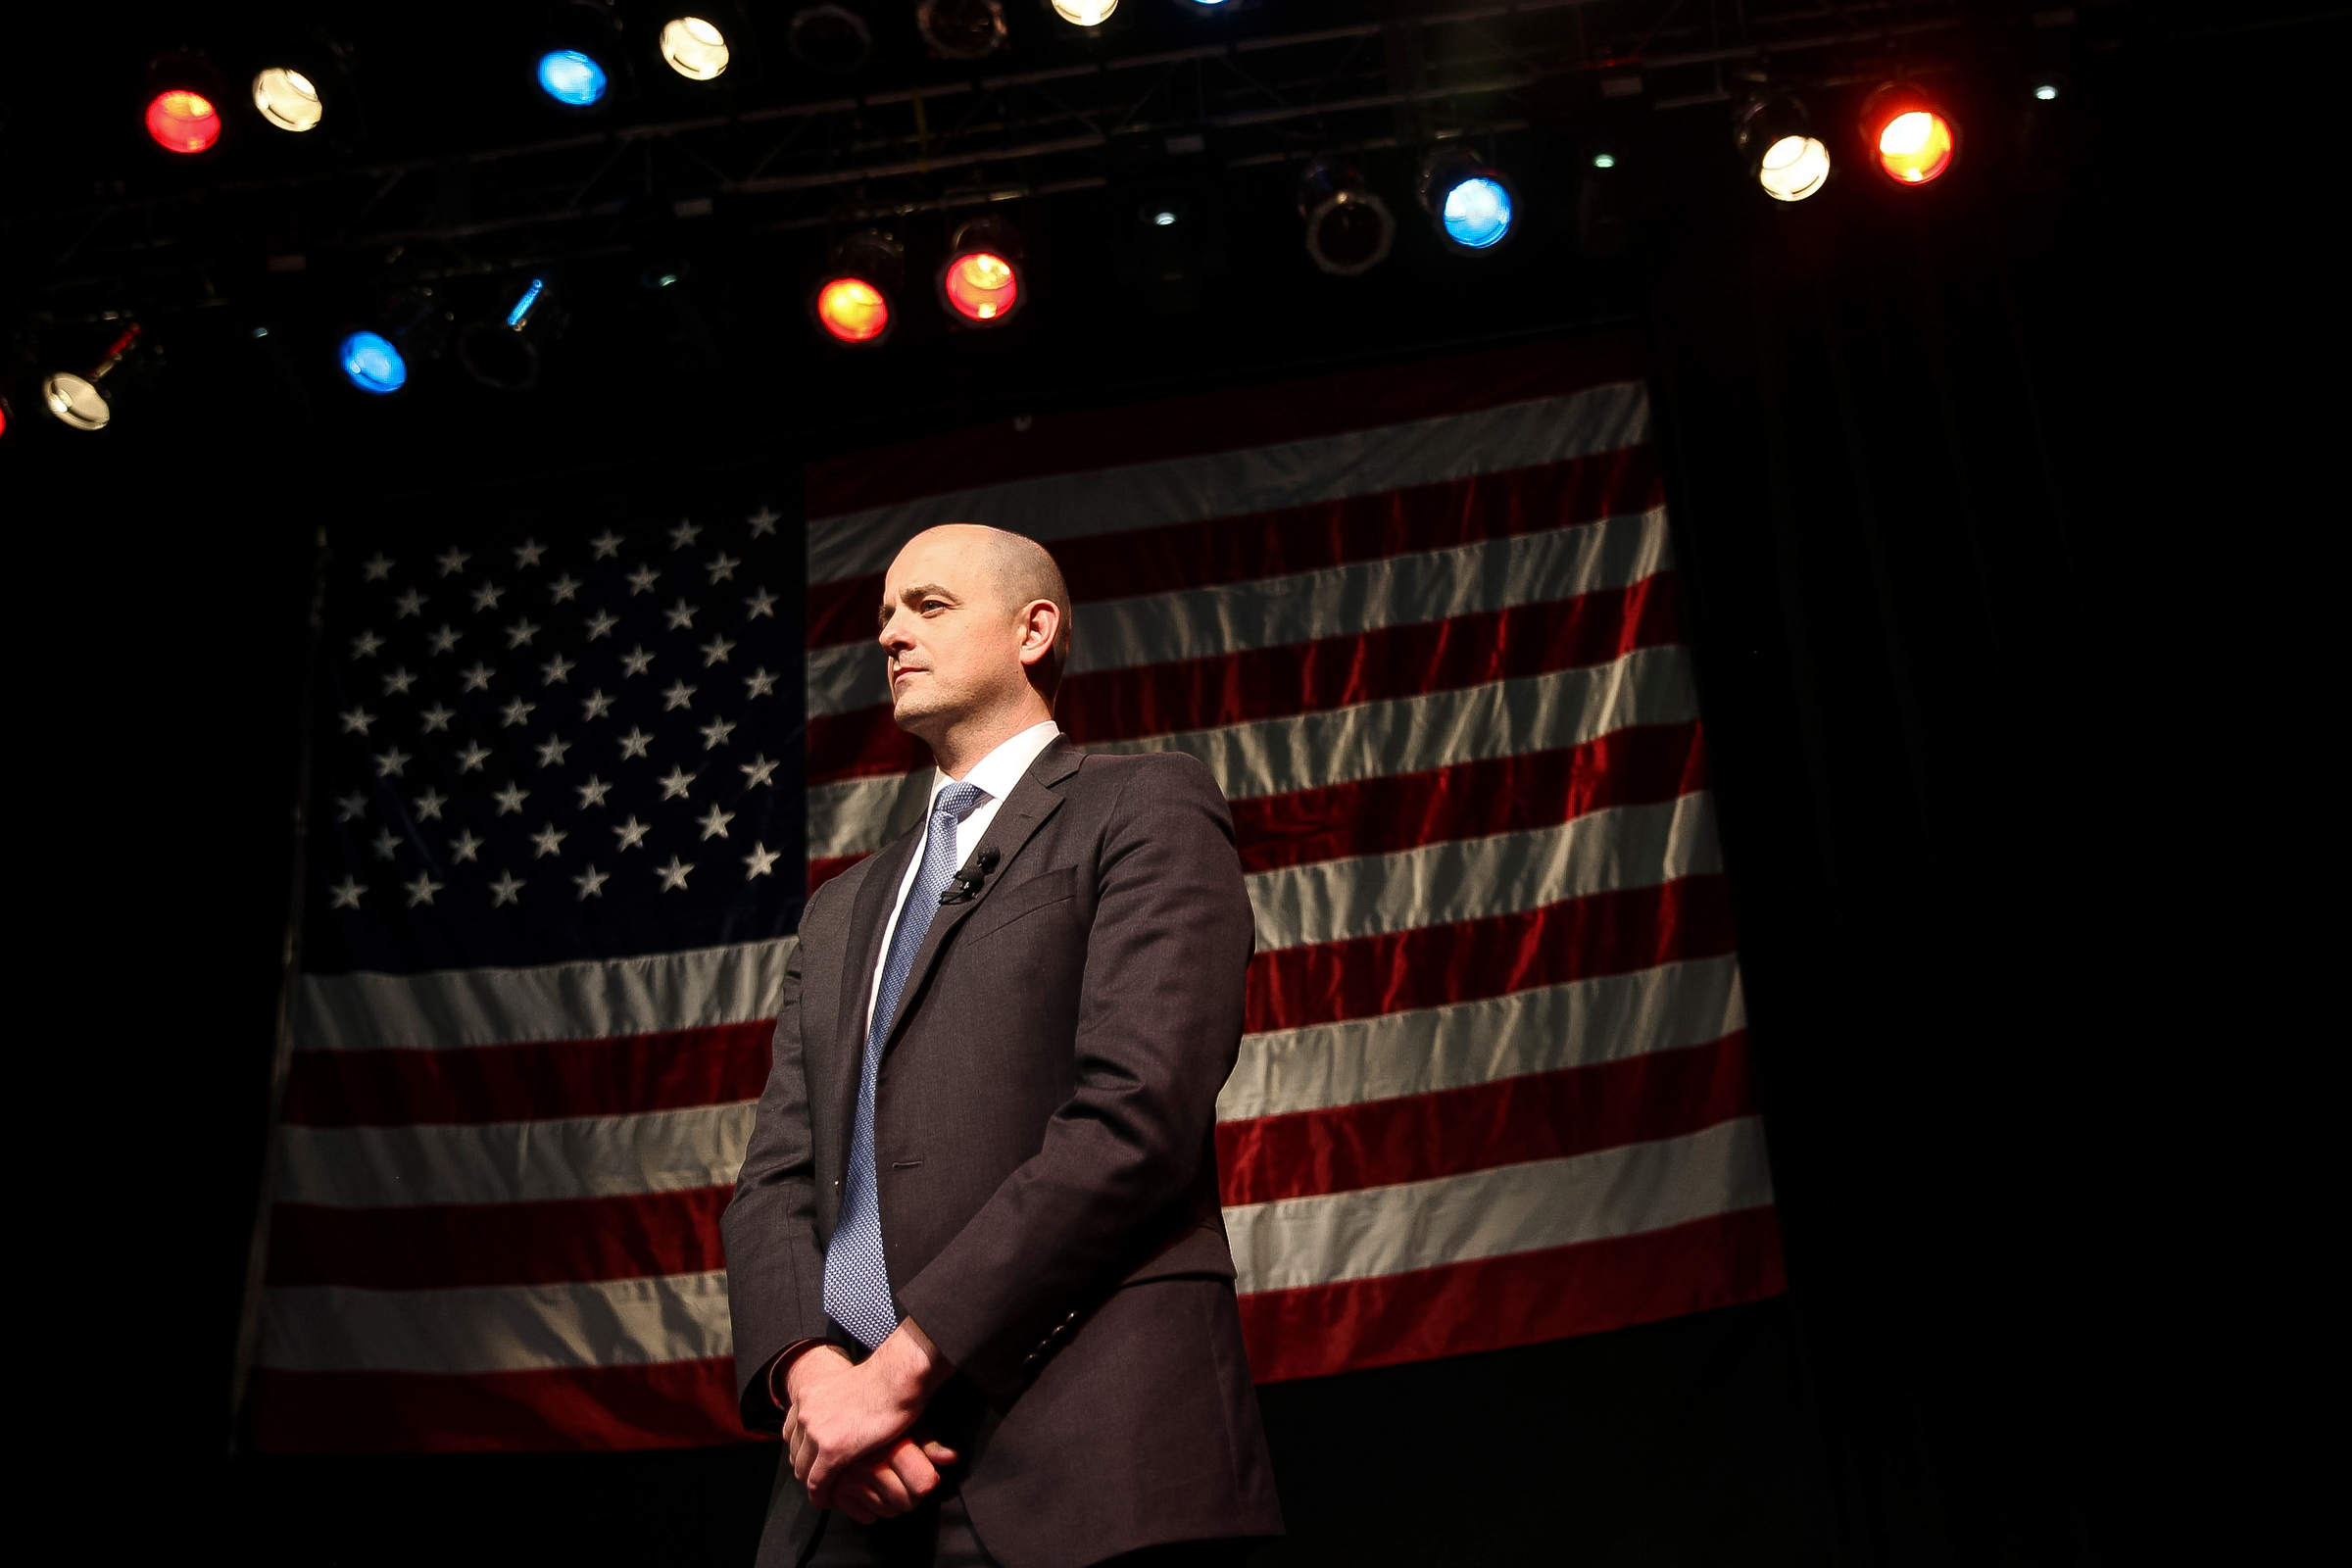 Conservative politician Evan McMullin delivers a speech in Salt Lake City.